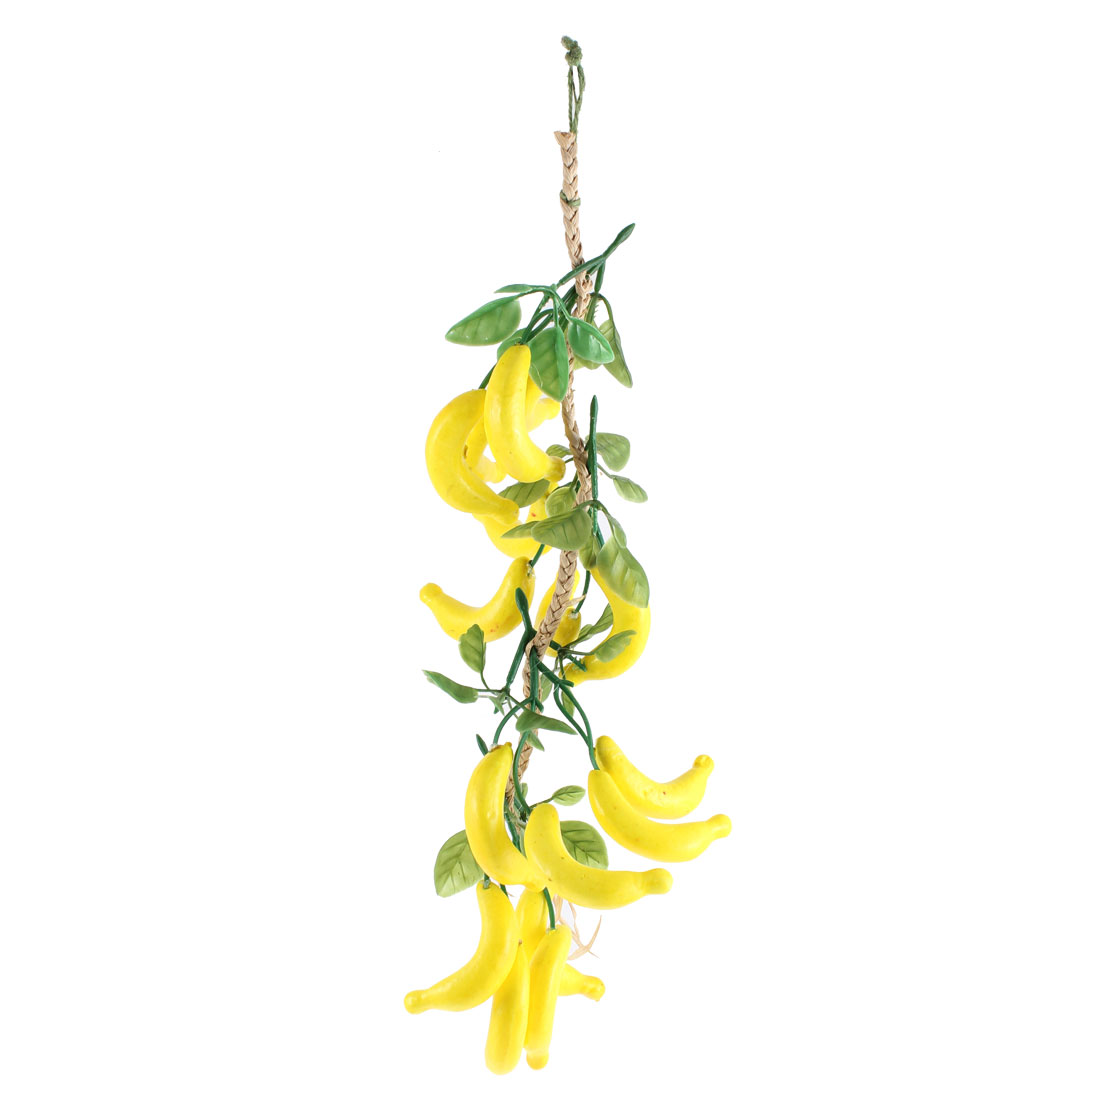 Home Decorative Artificial Fake Banana Garland Vine